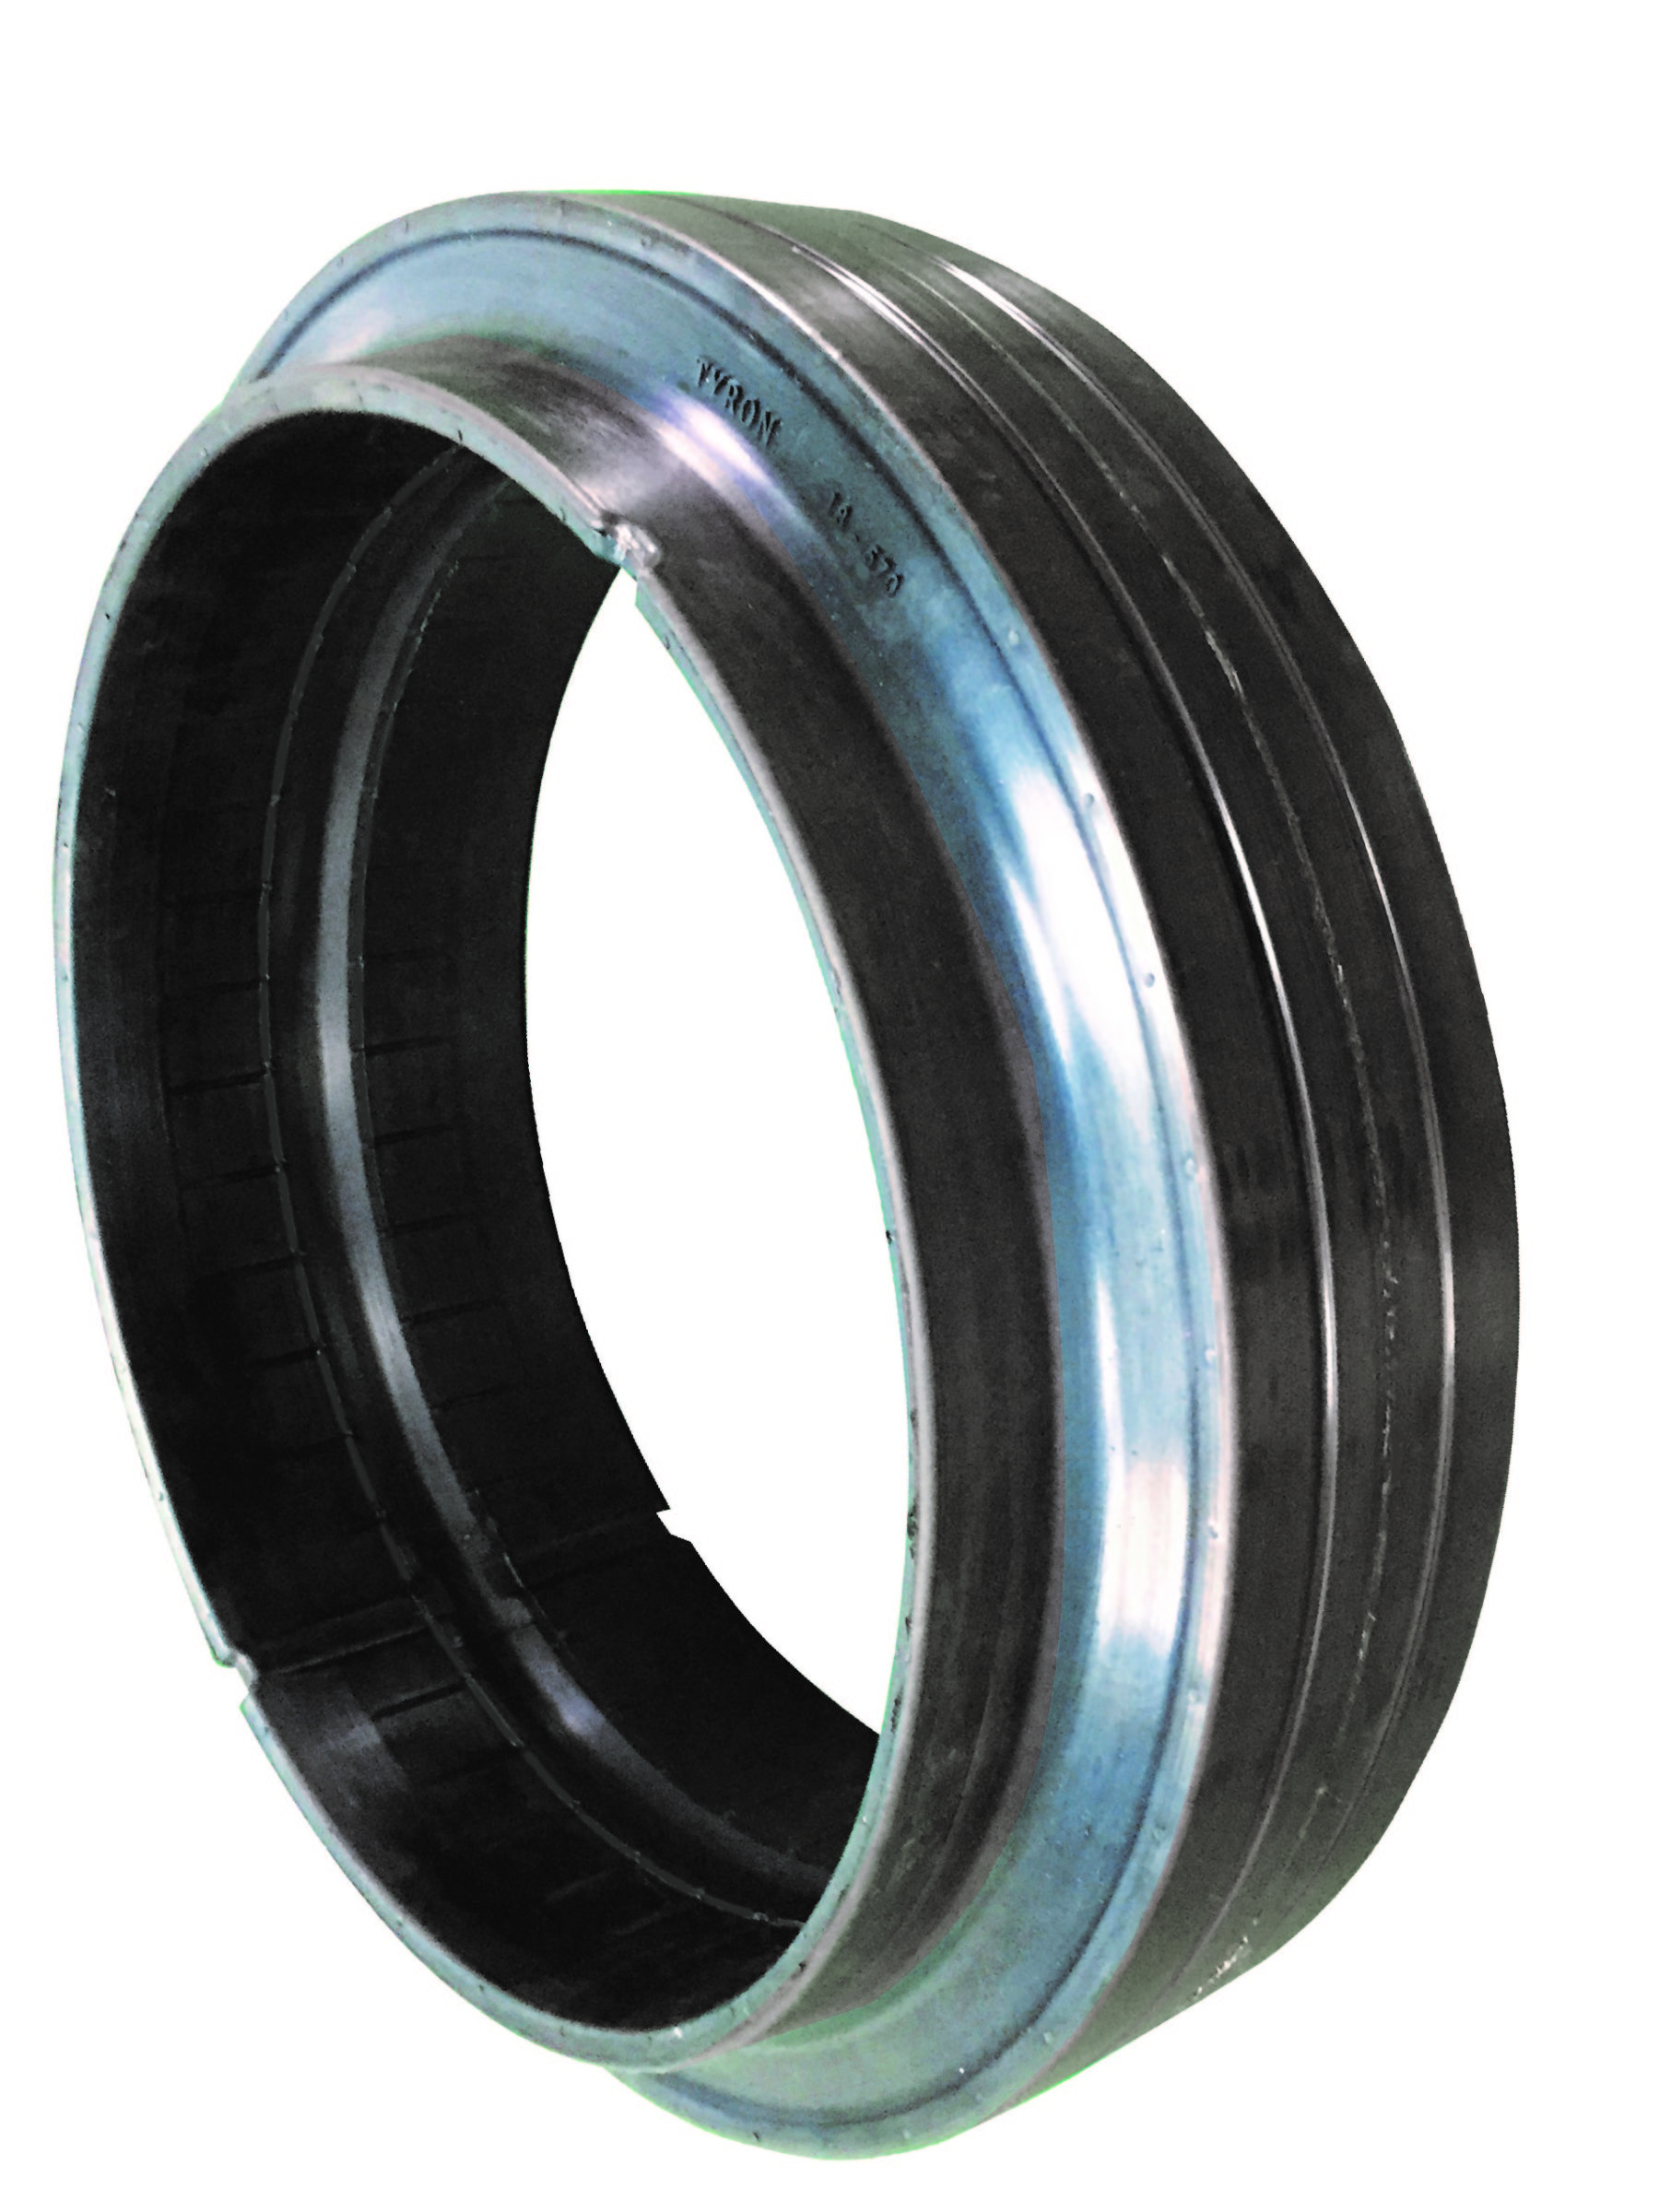 The Tyron ATR-SP is a more flexible solution to the ubiquitous single part rubber runflat